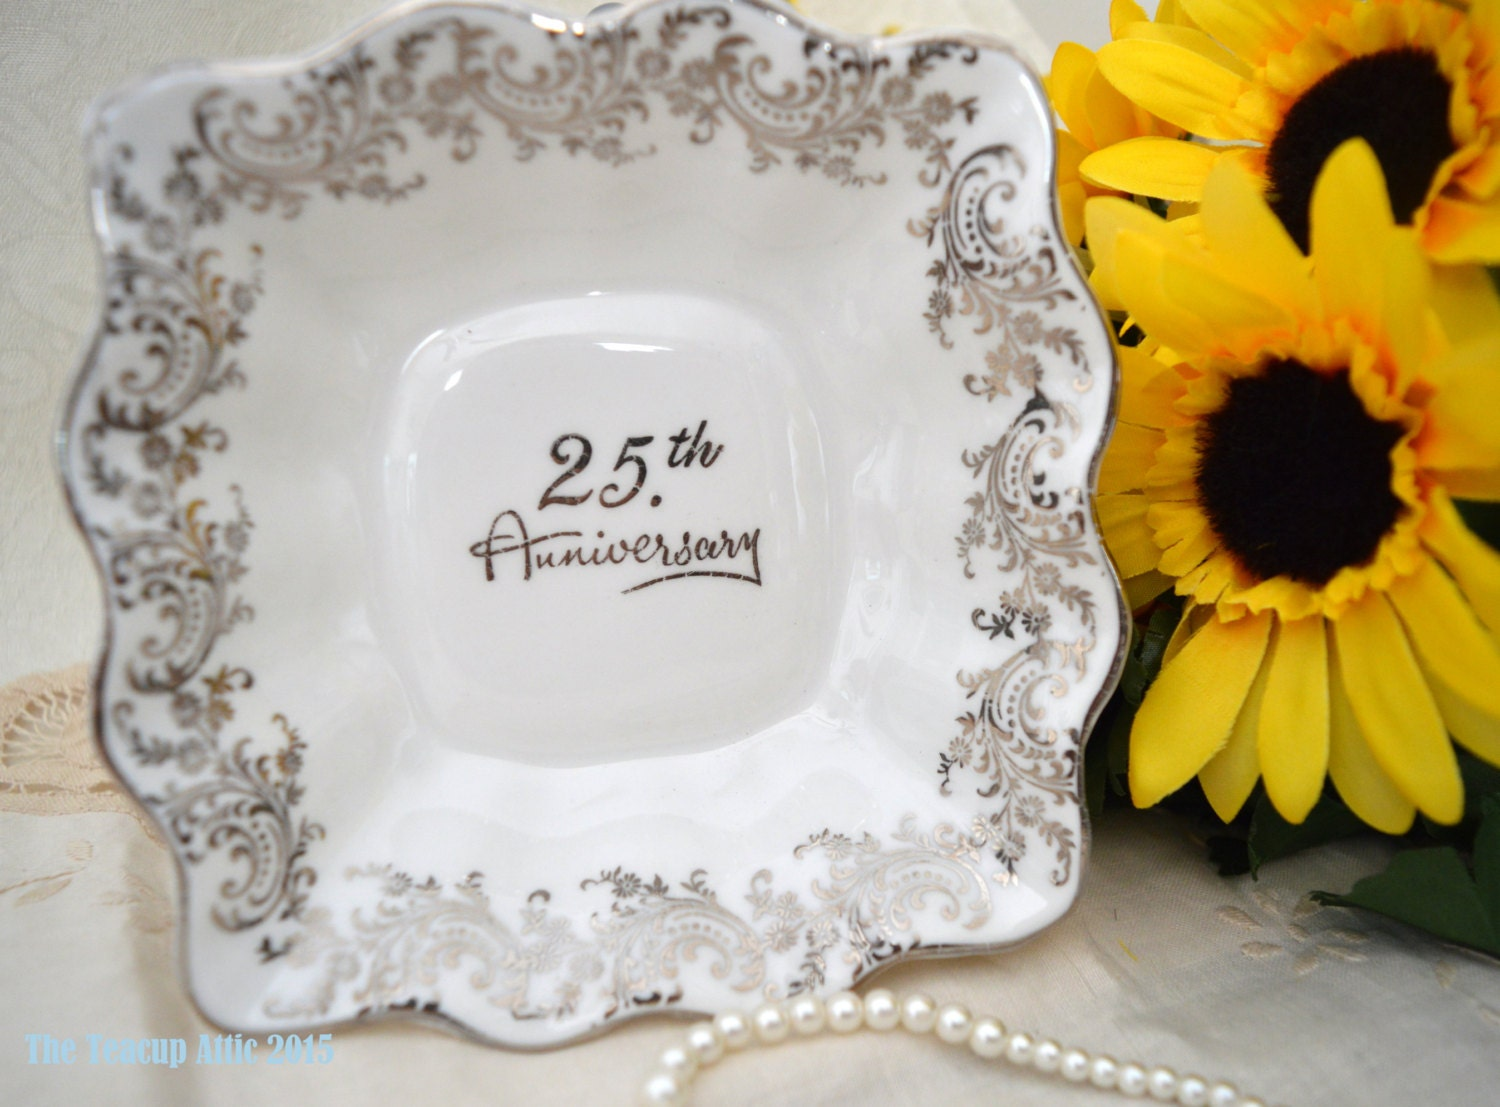 31 Wedding Anniversary Gift: Queen's Rosina 25th Square Anniversary Candy Dish